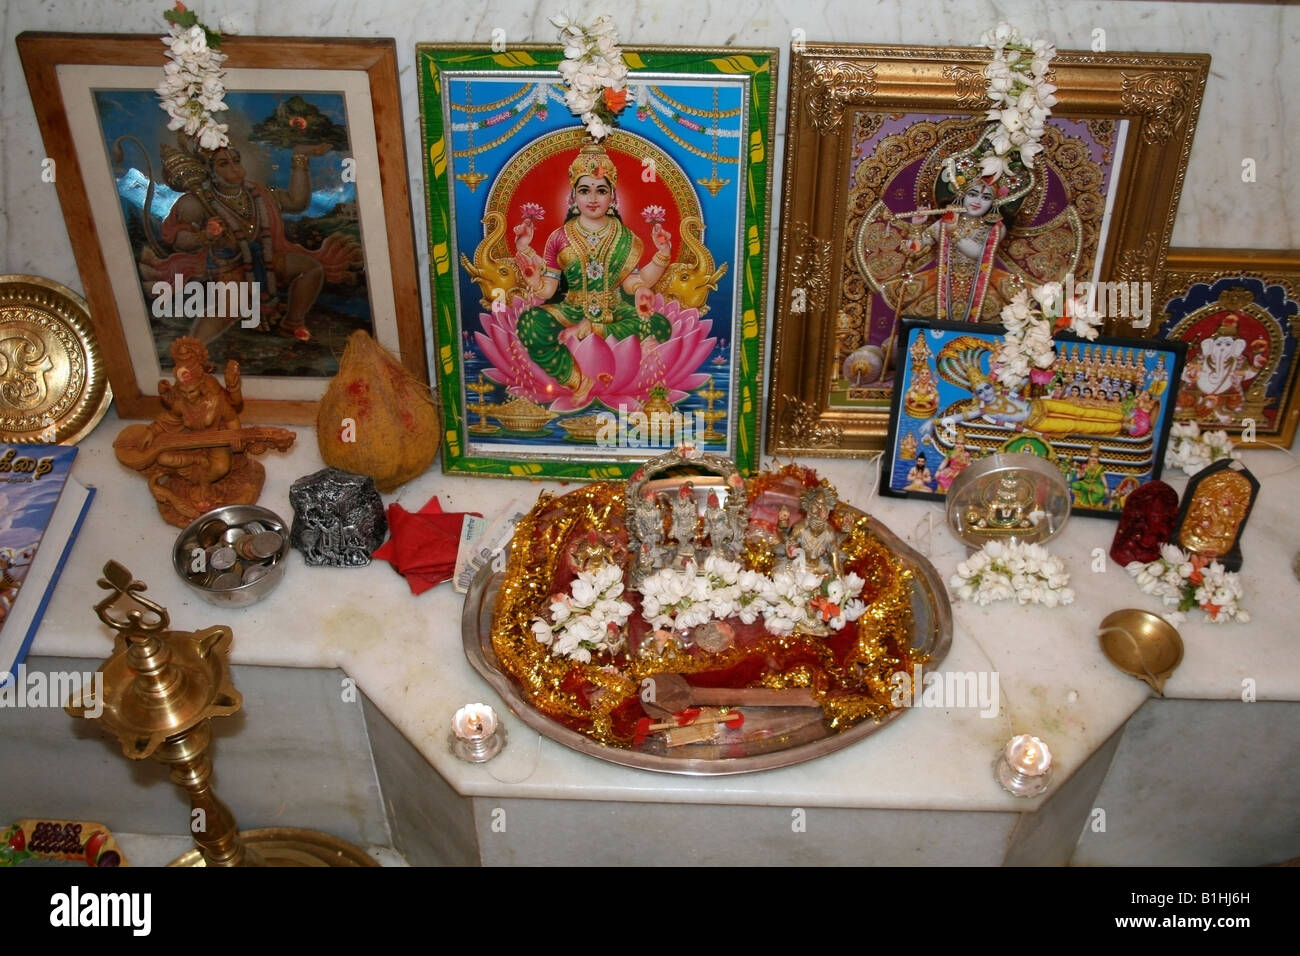 Hindu Shrine In A Home In India Stock Photo 18212505 Alamy